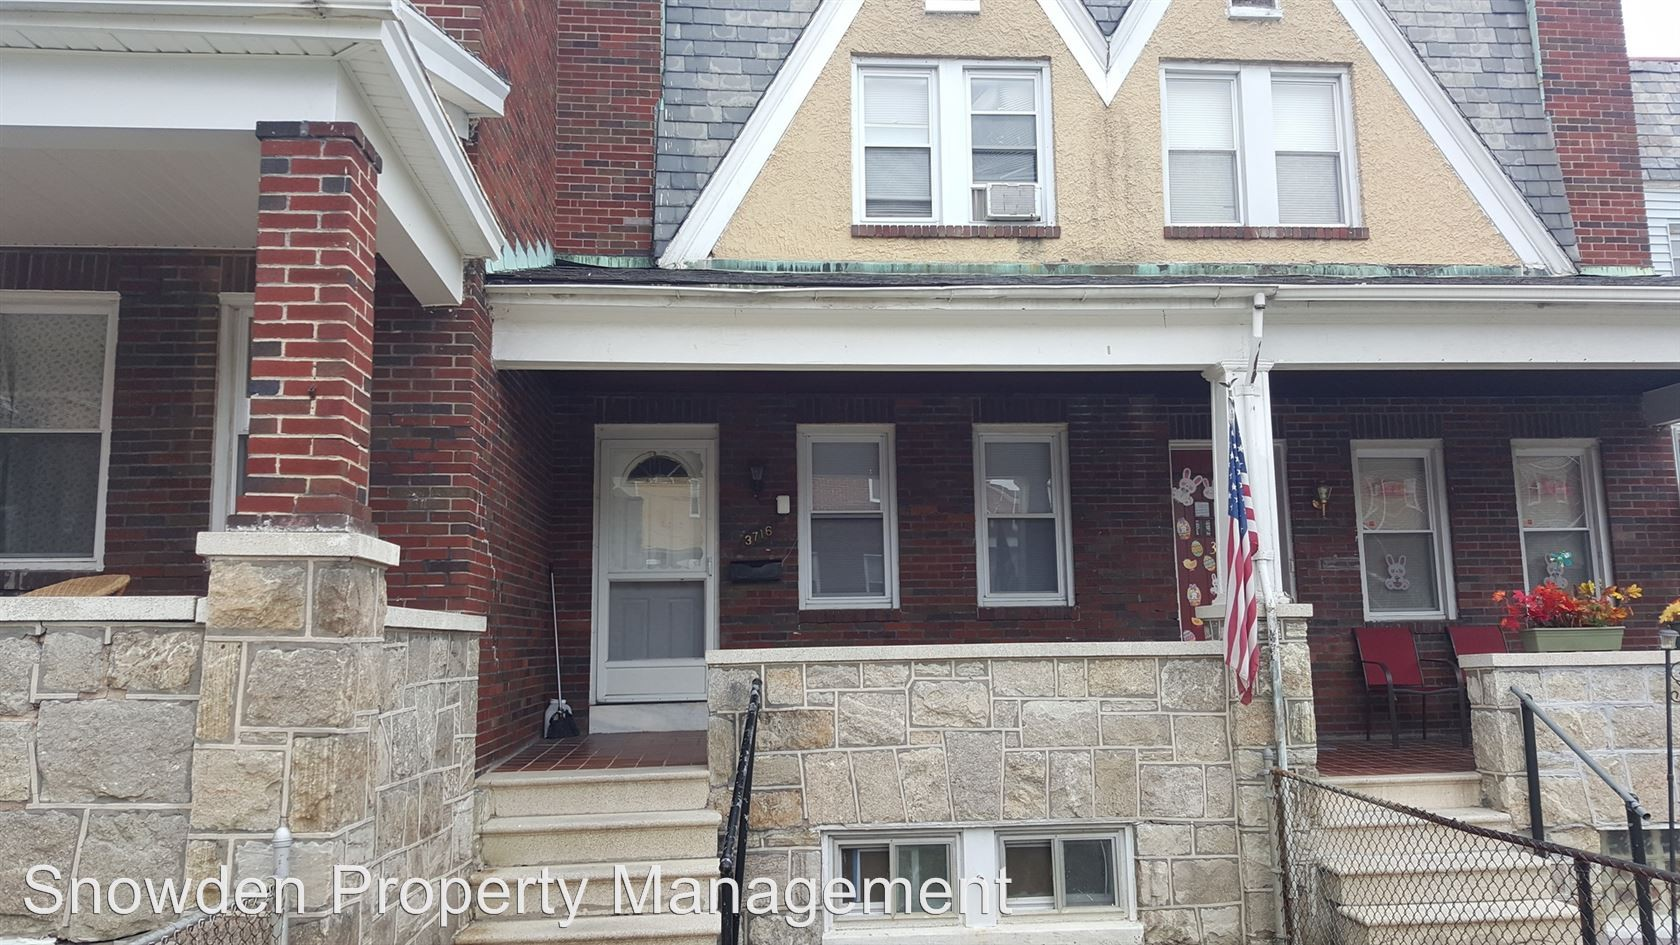 3716 Gelston Dr Baltimore Md 21229 3 Bedroom House For Rent For 1 350 Month Zumper